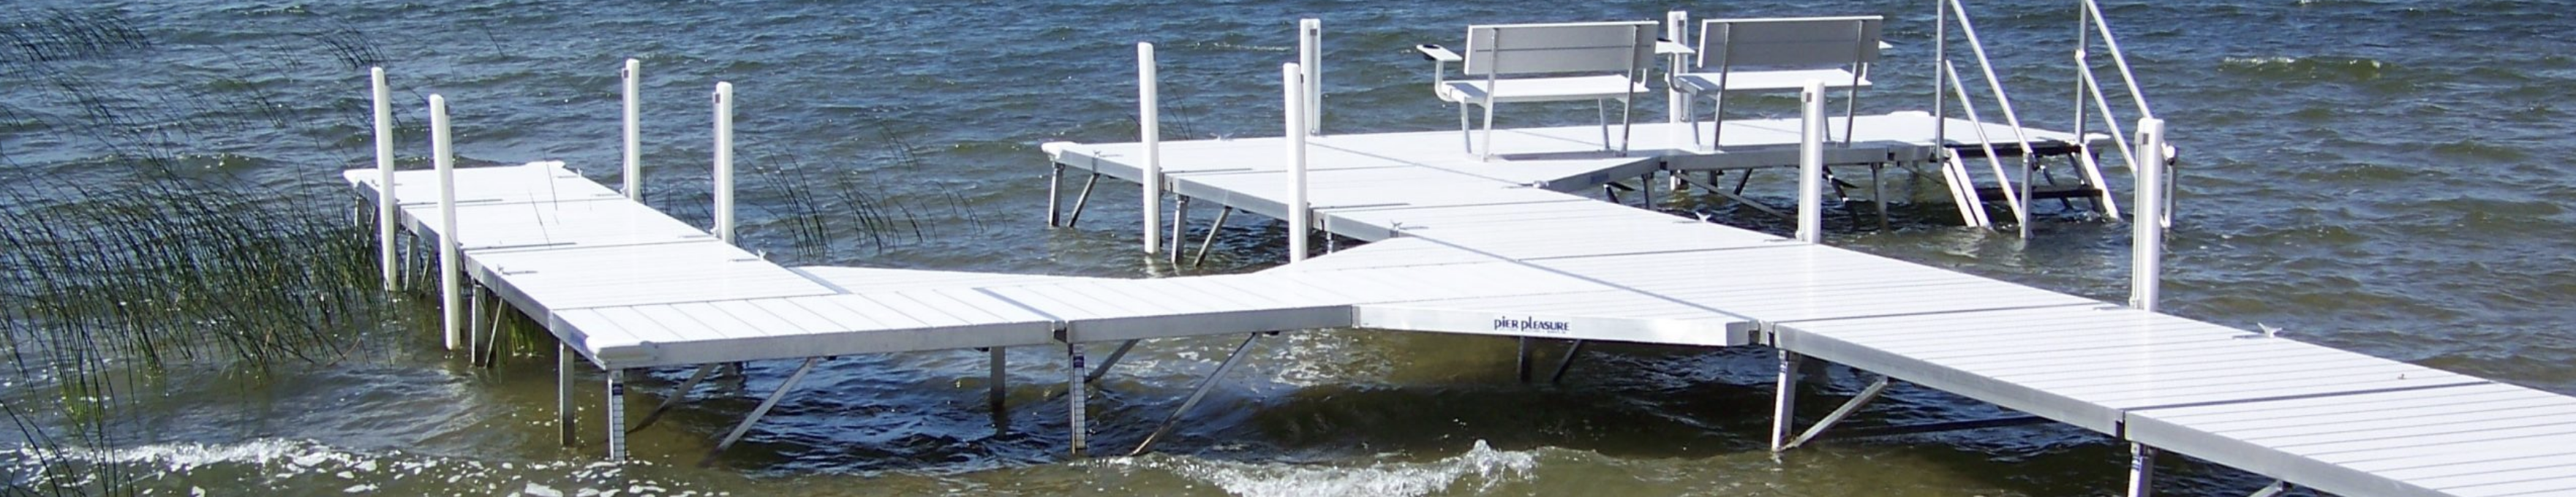 Pier Pleasure Wedge Section For Sale